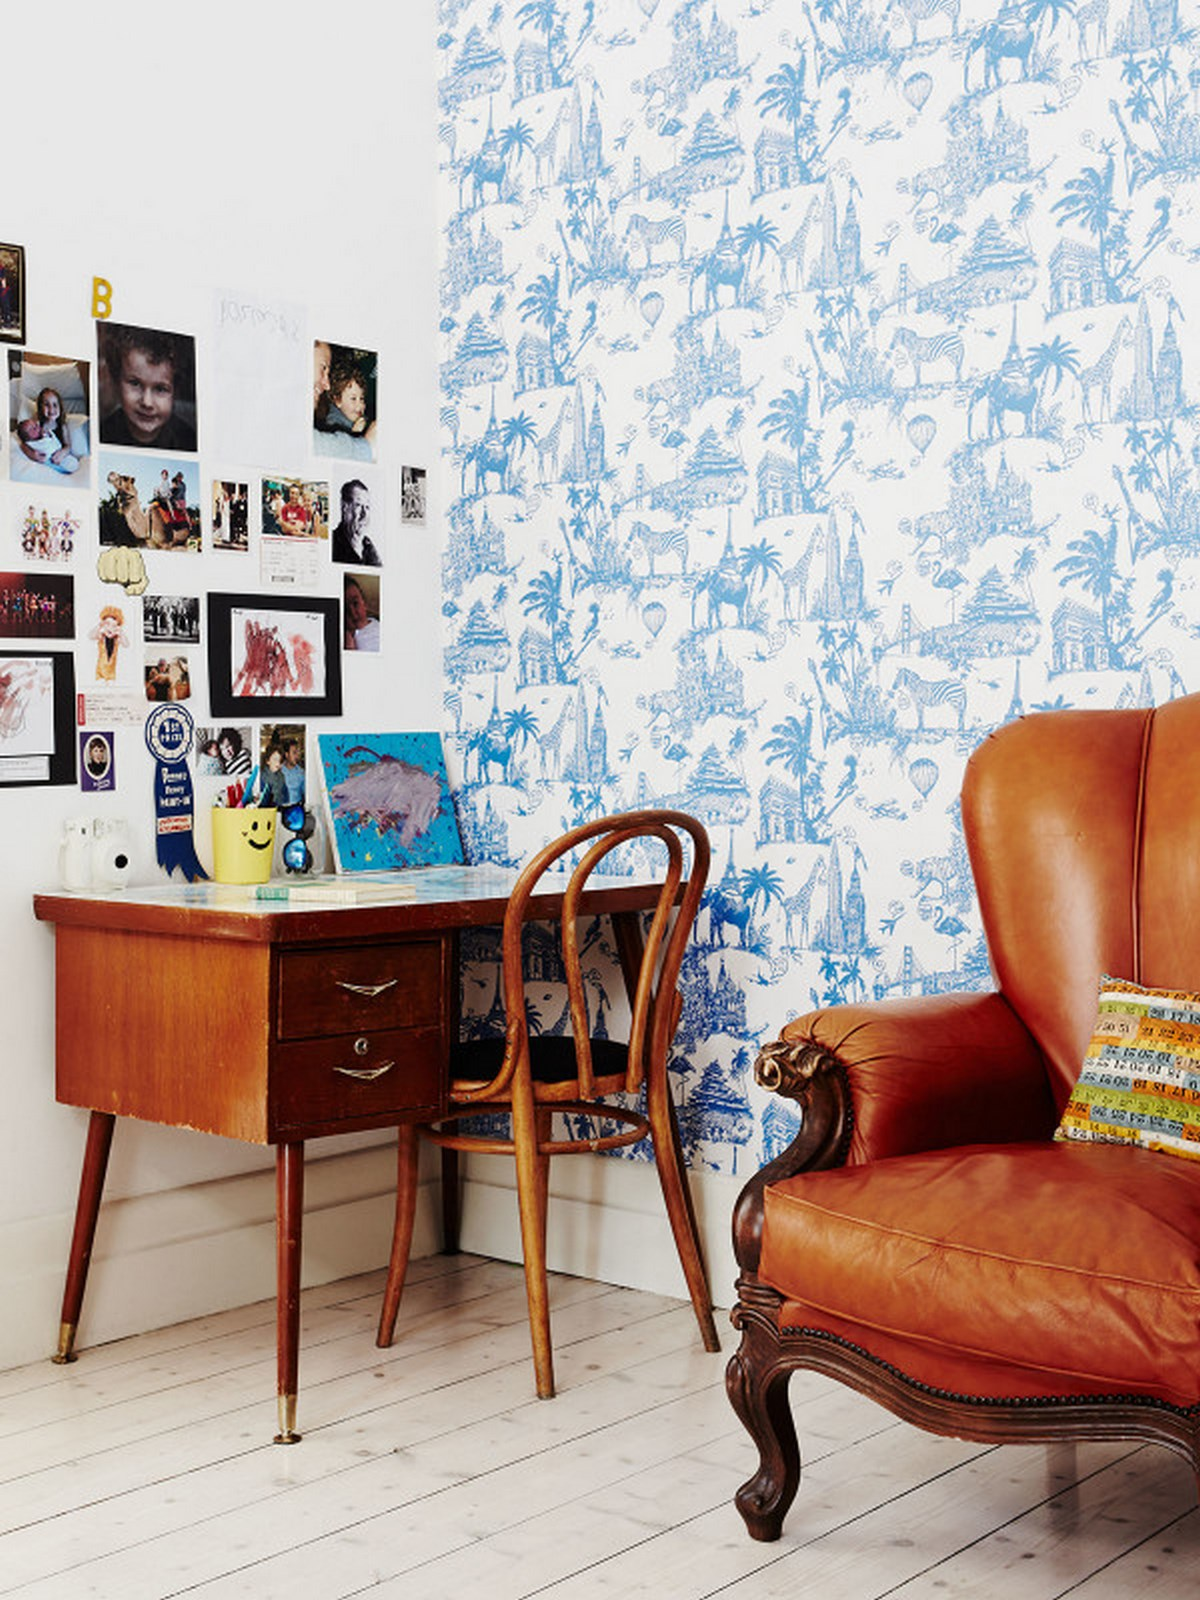 9-study-room-kids-design-with-wallpaper-picture-frame-ideas-with-wooden-floor-and-wooden-rattan-chair